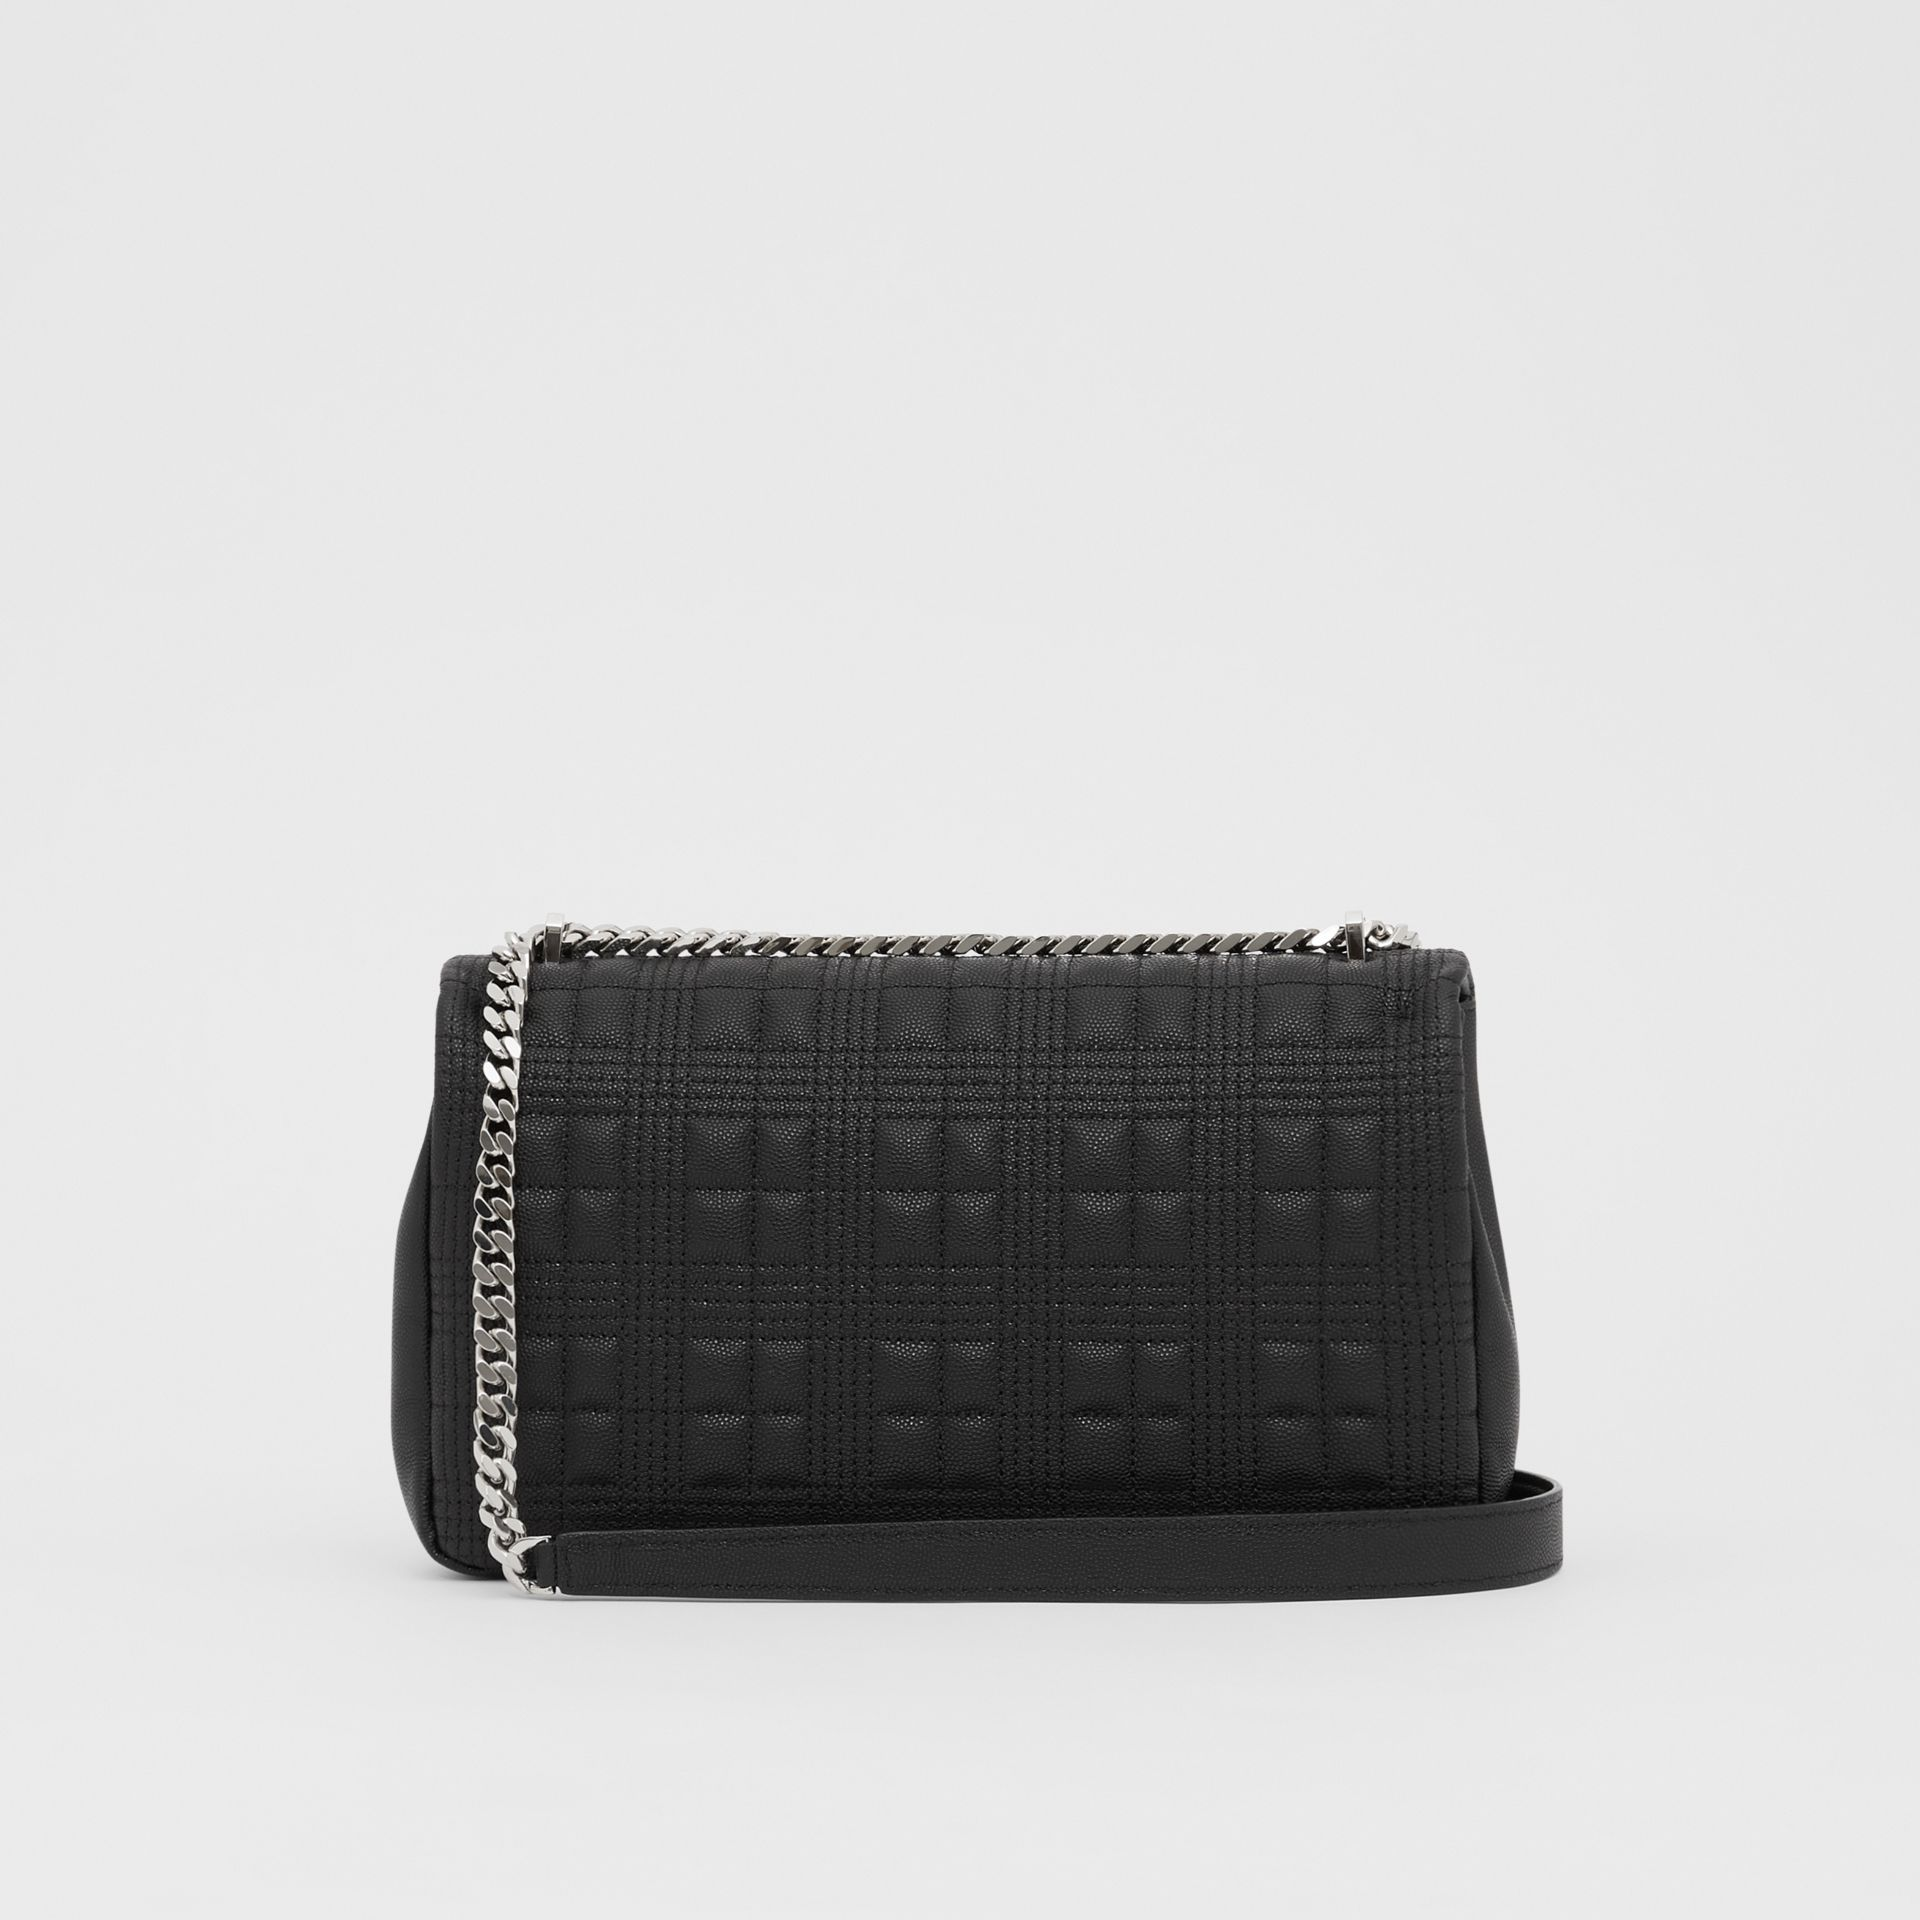 Medium Quilted Grainy Leather Lola Bag in Black/palladium - Women | Burberry United Kingdom - gallery image 7